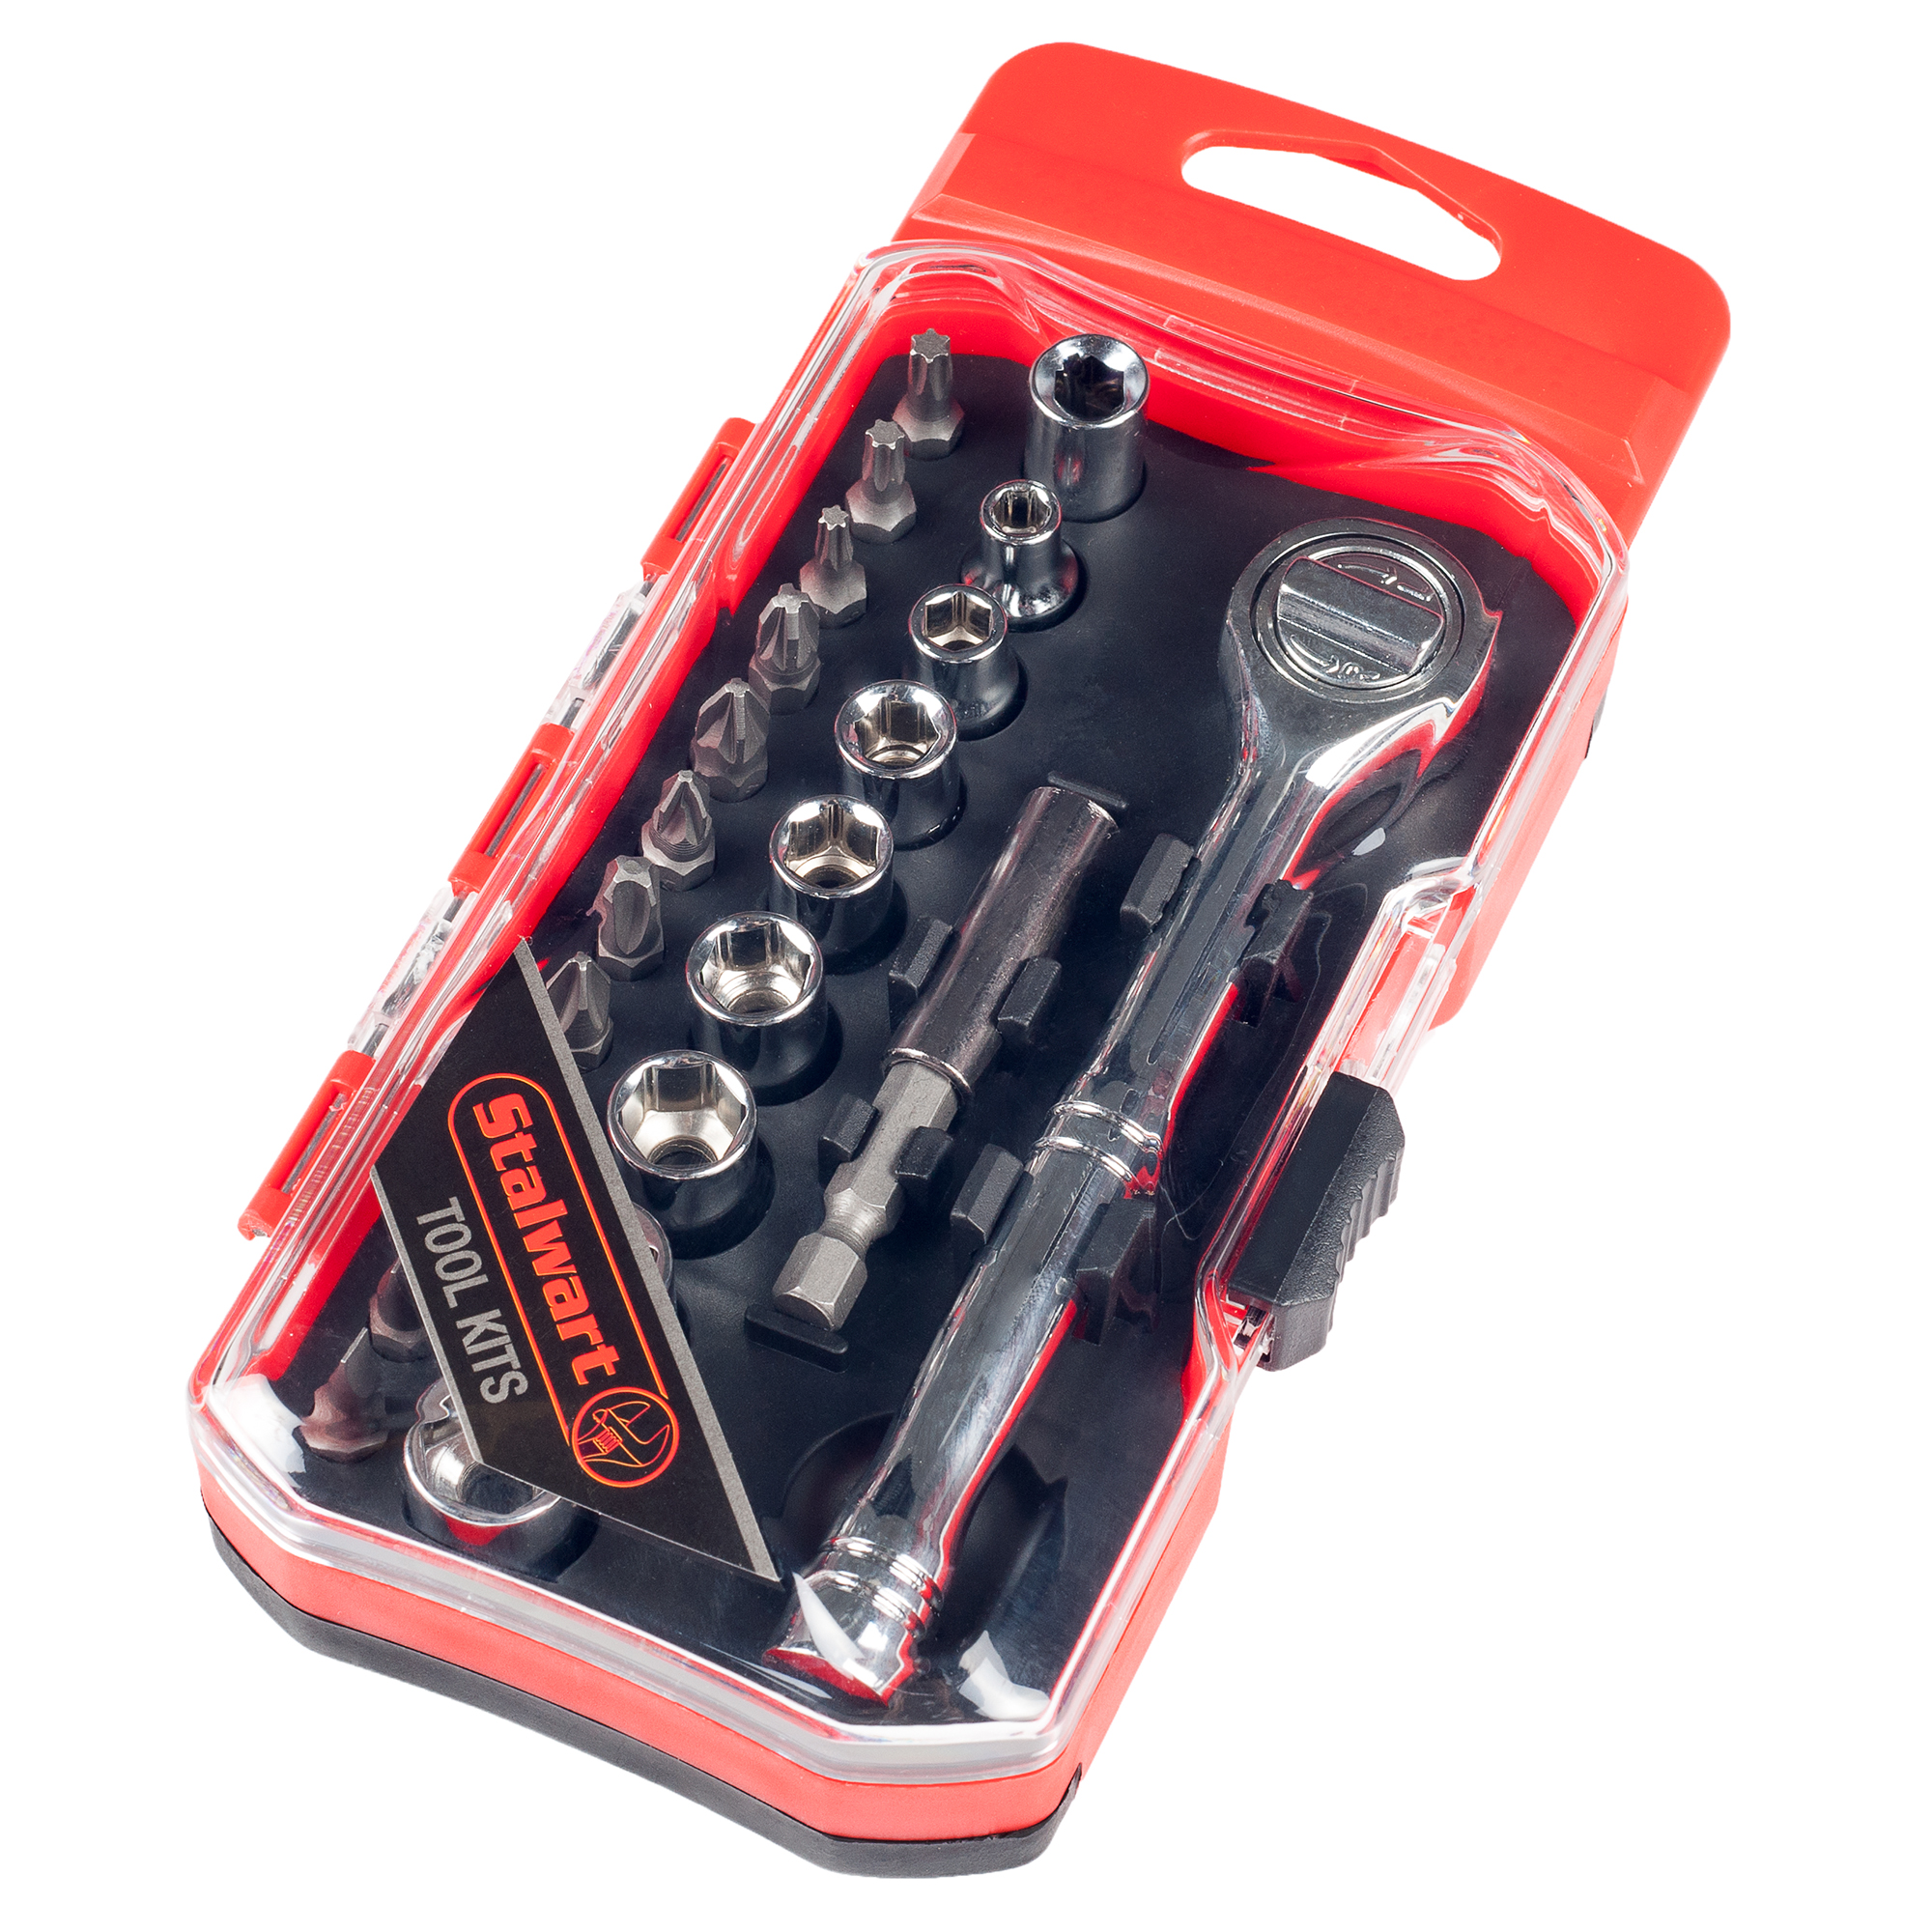 Ratchet, Metric Socket and Bit Set 23 PC by Stalwart